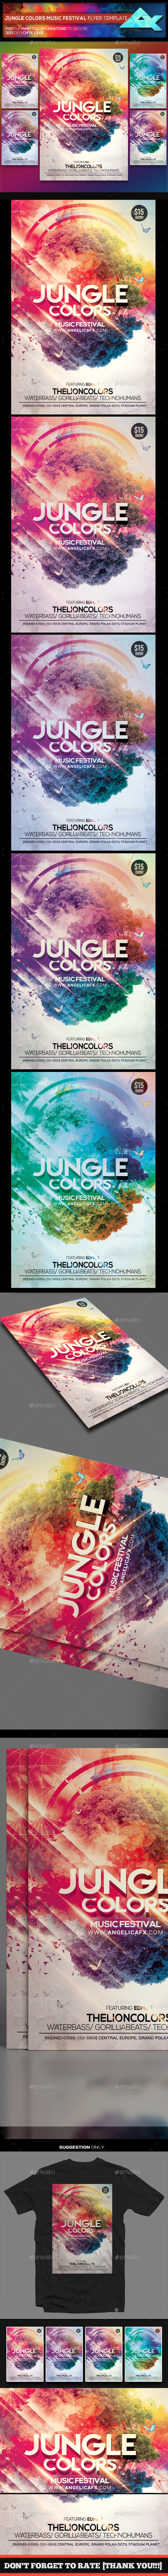 Jungle Colors Music Festival Flyer Template - Flyers Print Templates